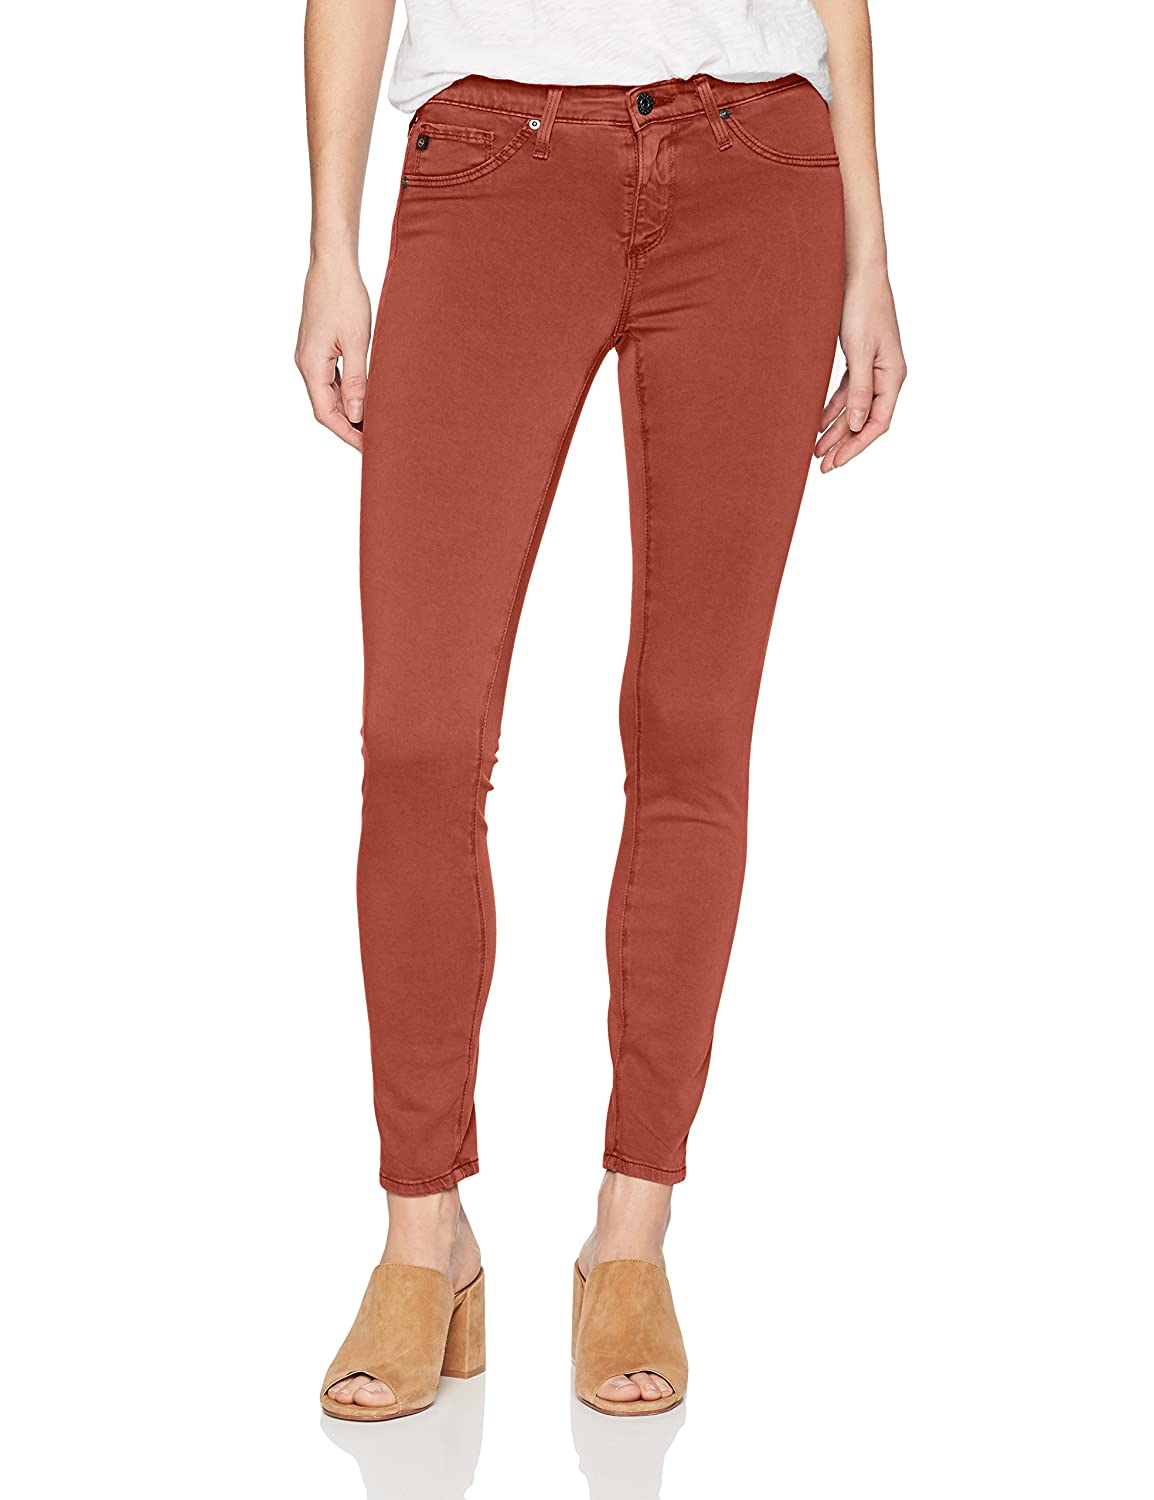 Immersed Raw Sienna AG Adriano goldschmied Womens Legging Ankle Sateen Jeans